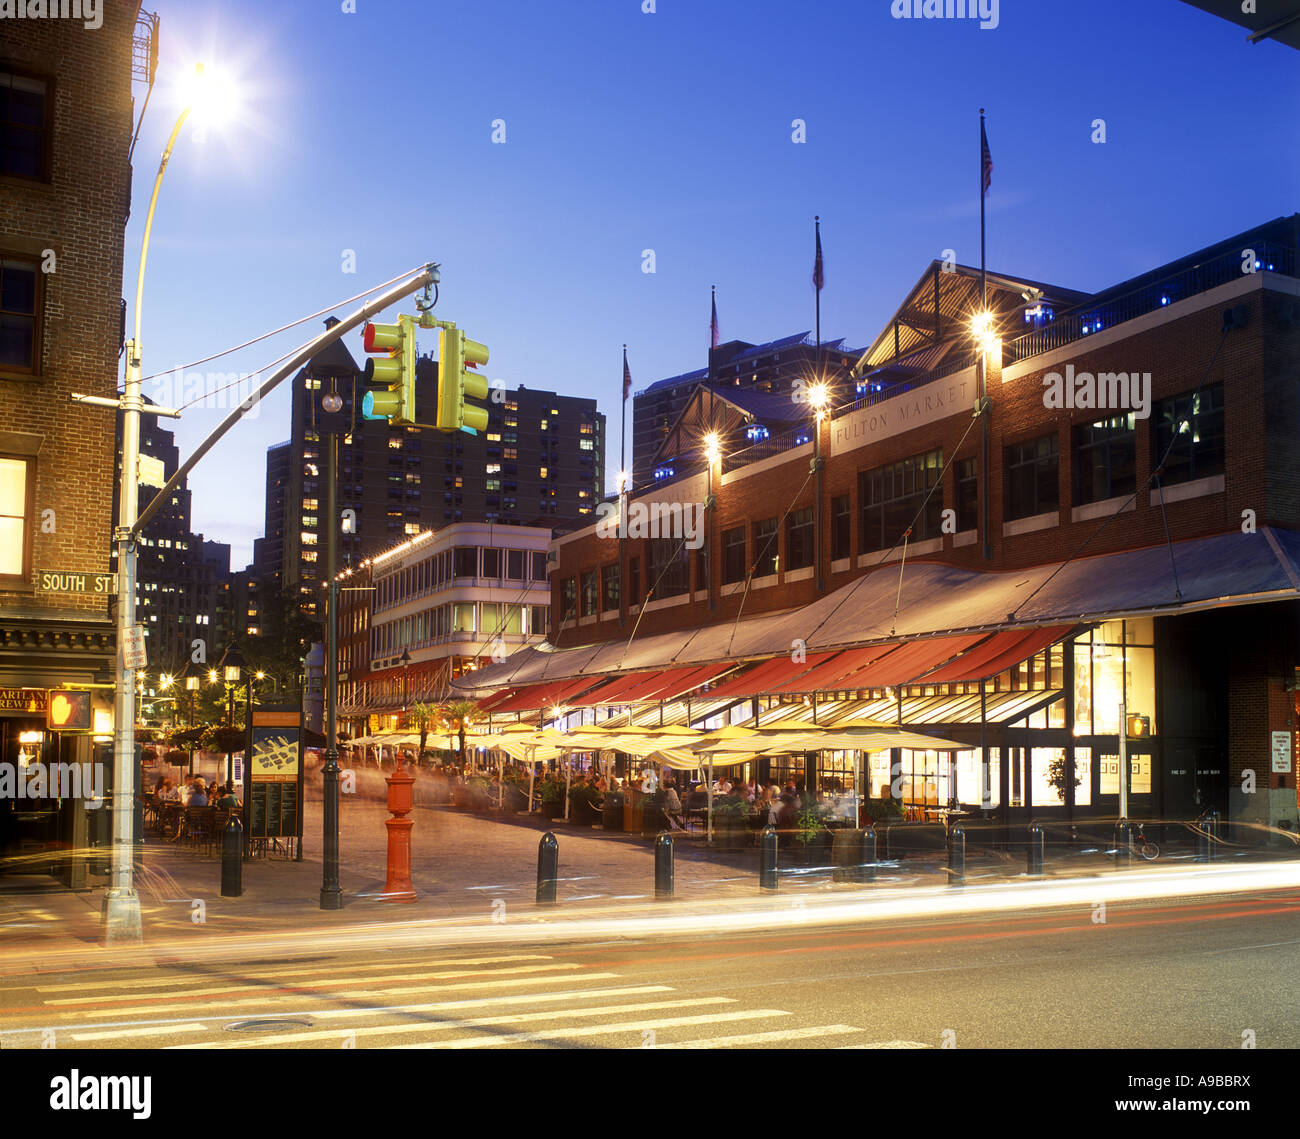 Restaurants South Street Seaport Downtown Manhattan New York